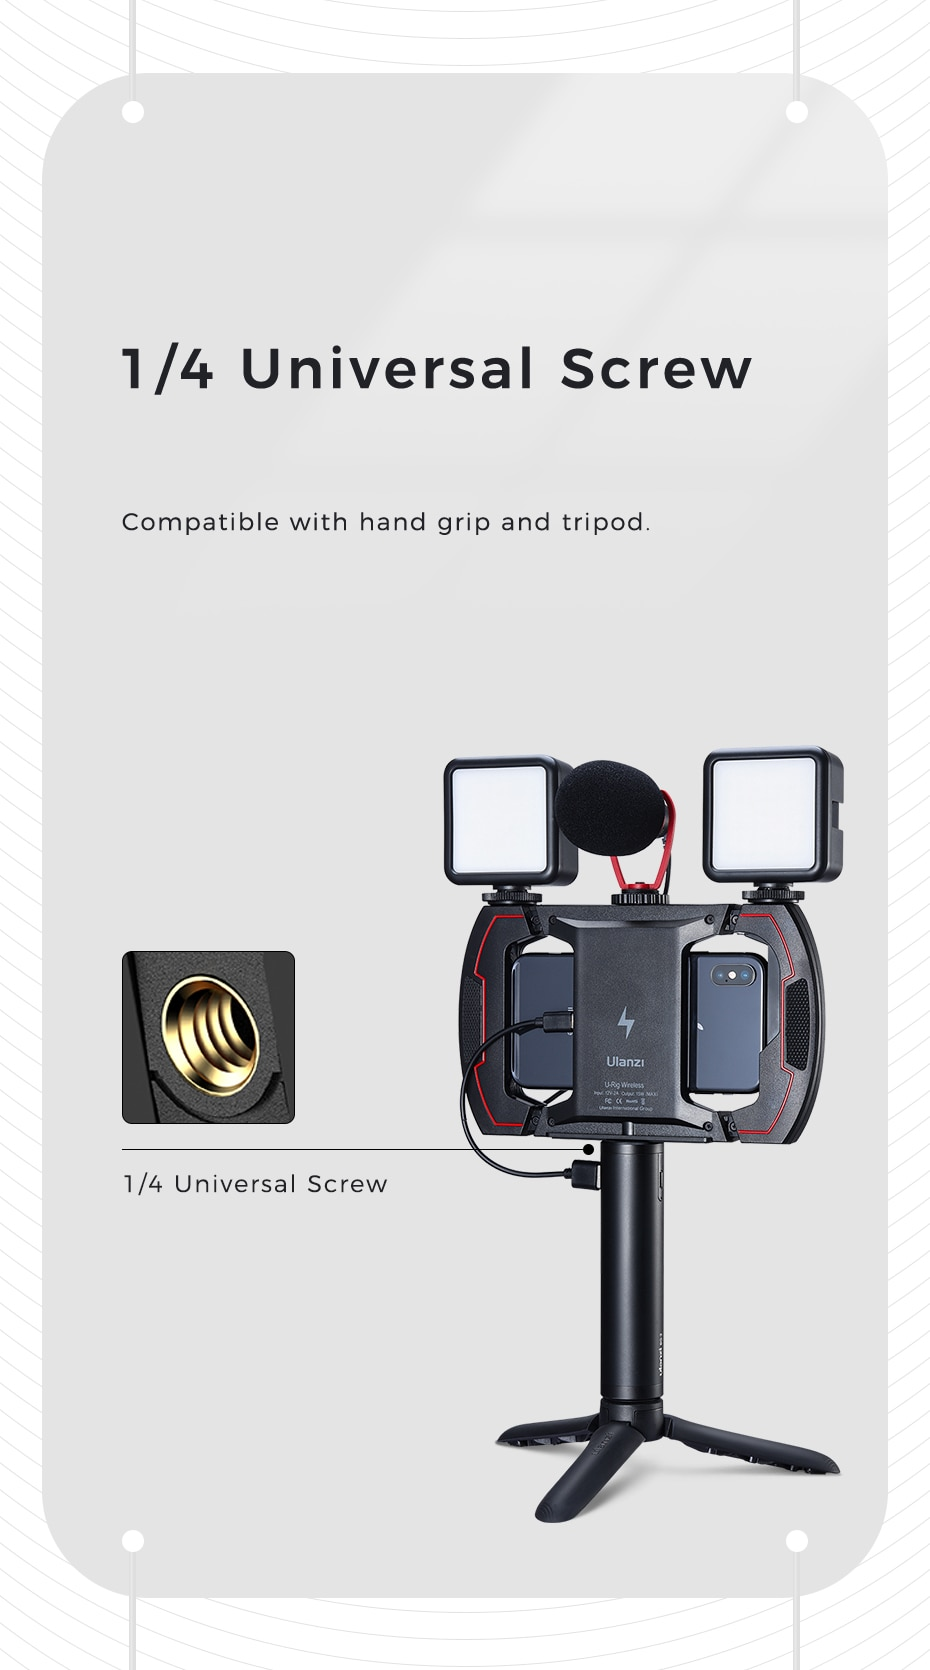 Ulanzi U-Rig Wireless Phone Charger 15W Fast Charging Holder Mount for iPhone Android Smartphone Tripod Mount Holder Vlog Rig